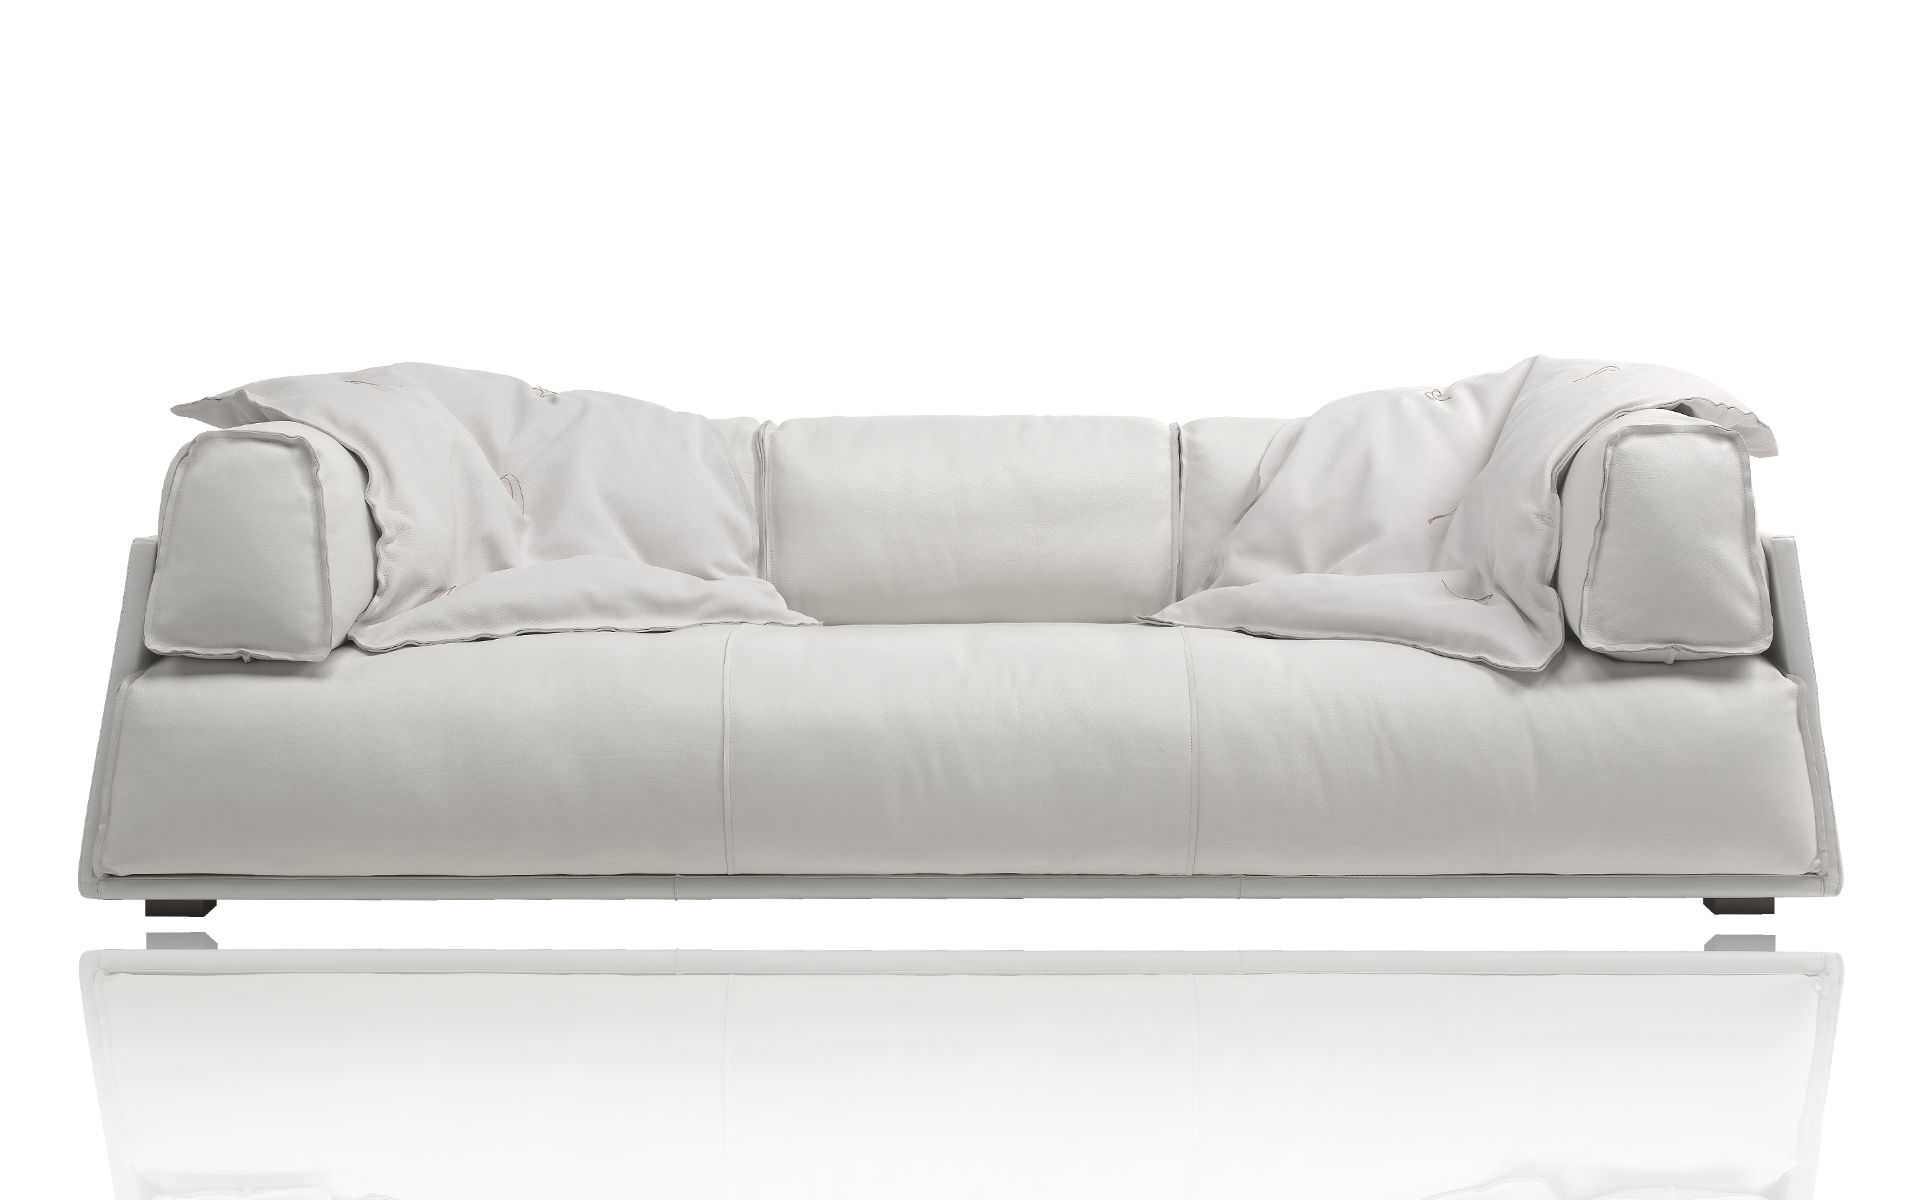 Newest Soft Sofas Intended For Soft Sofa – Mforum (View 9 of 20)